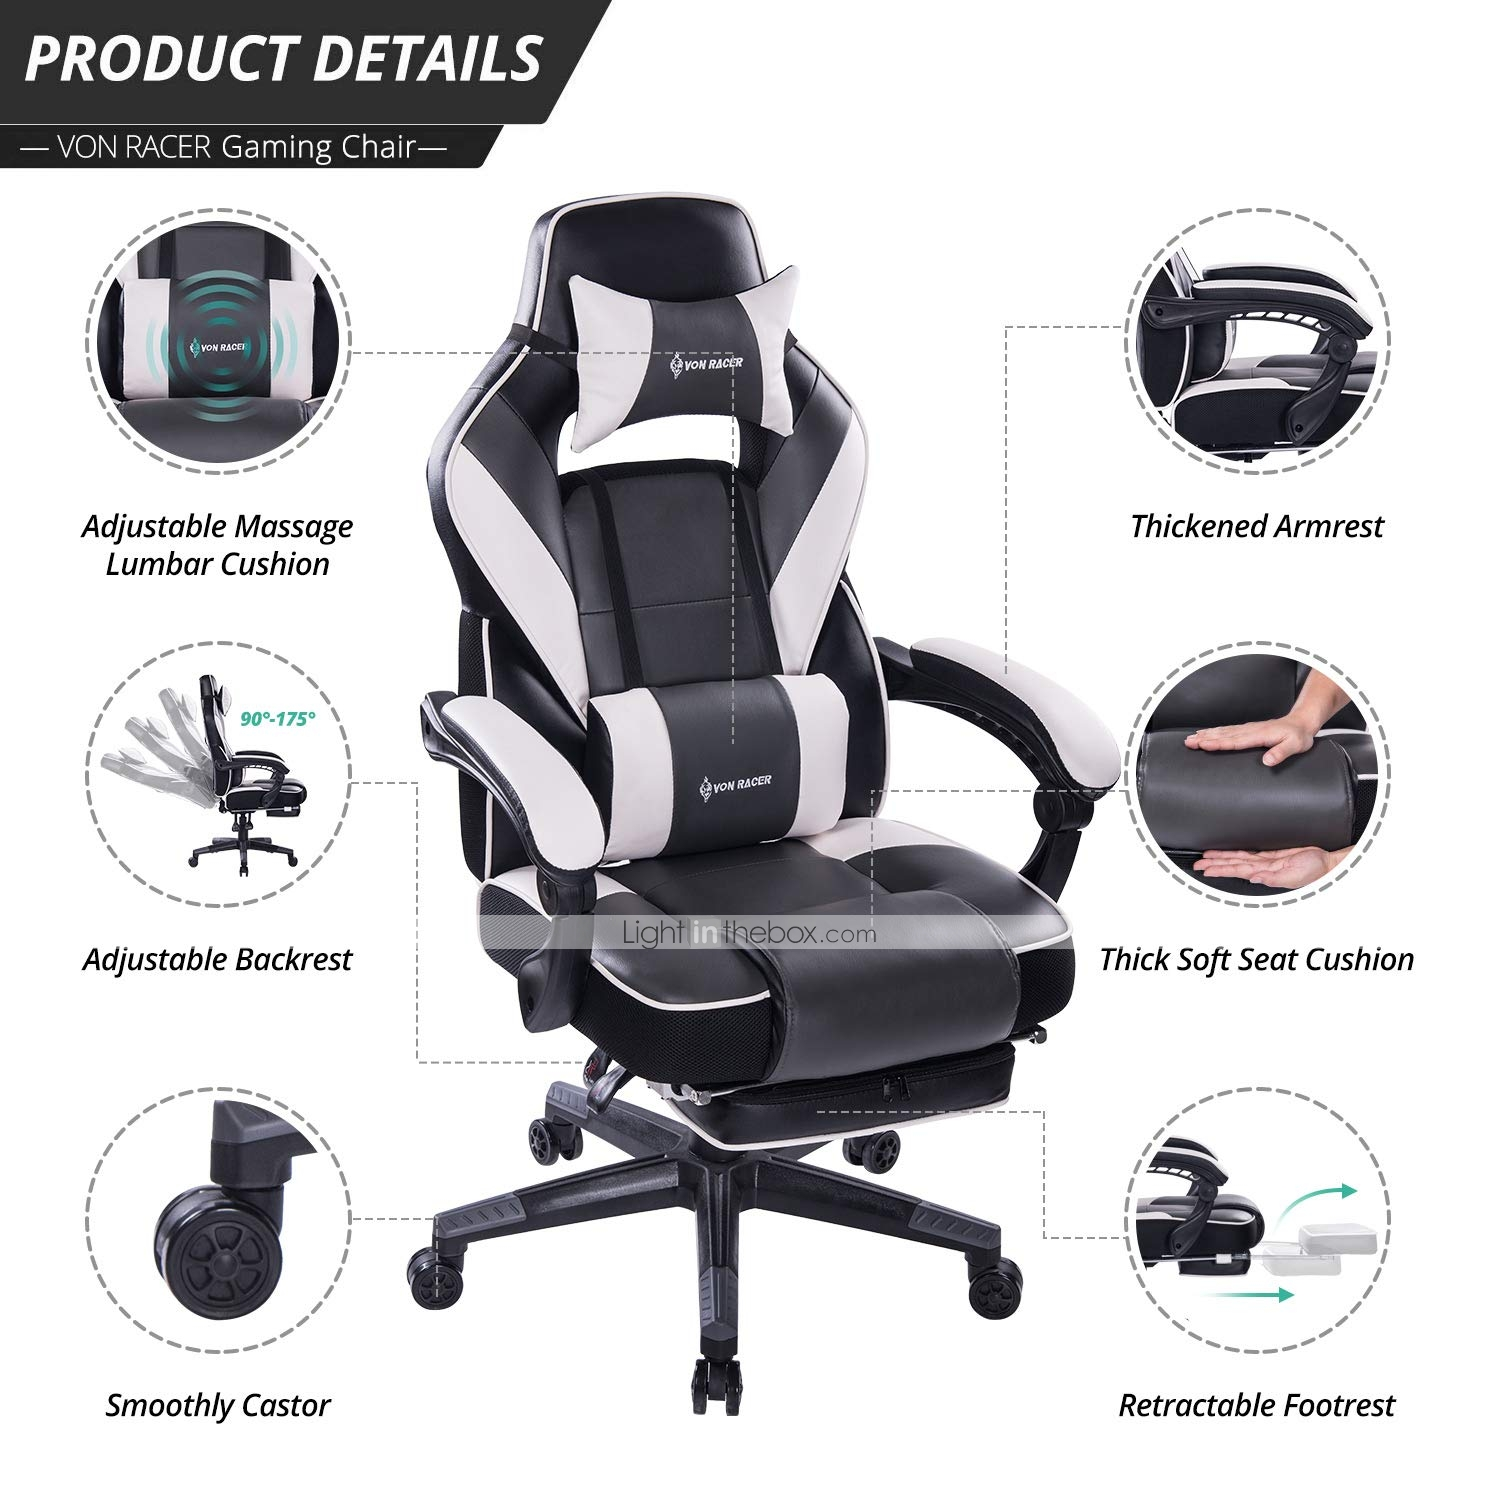 Sensational Von Racer Massage Reclining Gaming Chair Ergonomic High Caraccident5 Cool Chair Designs And Ideas Caraccident5Info